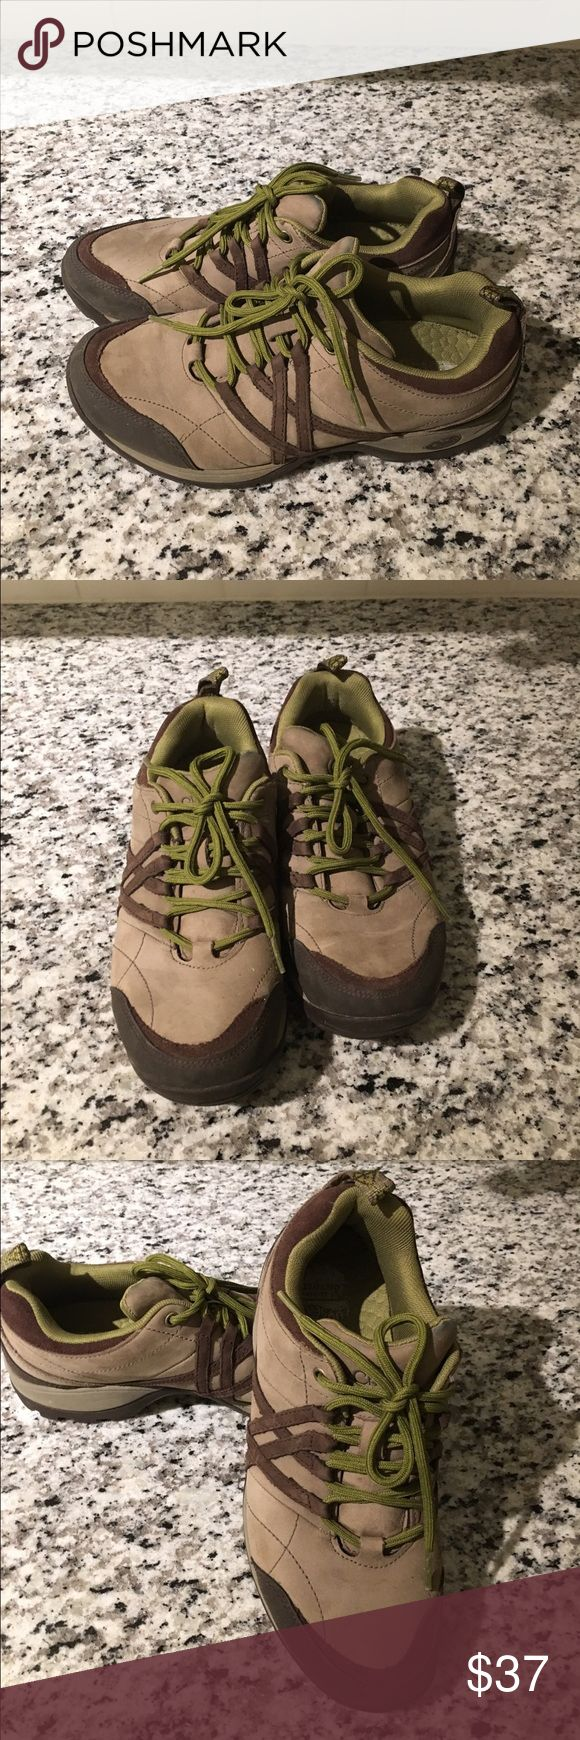 Chaco hiking shoes Worn. Very comfortable. In a great condition. Chaco Shoes Winter & Rain Boots